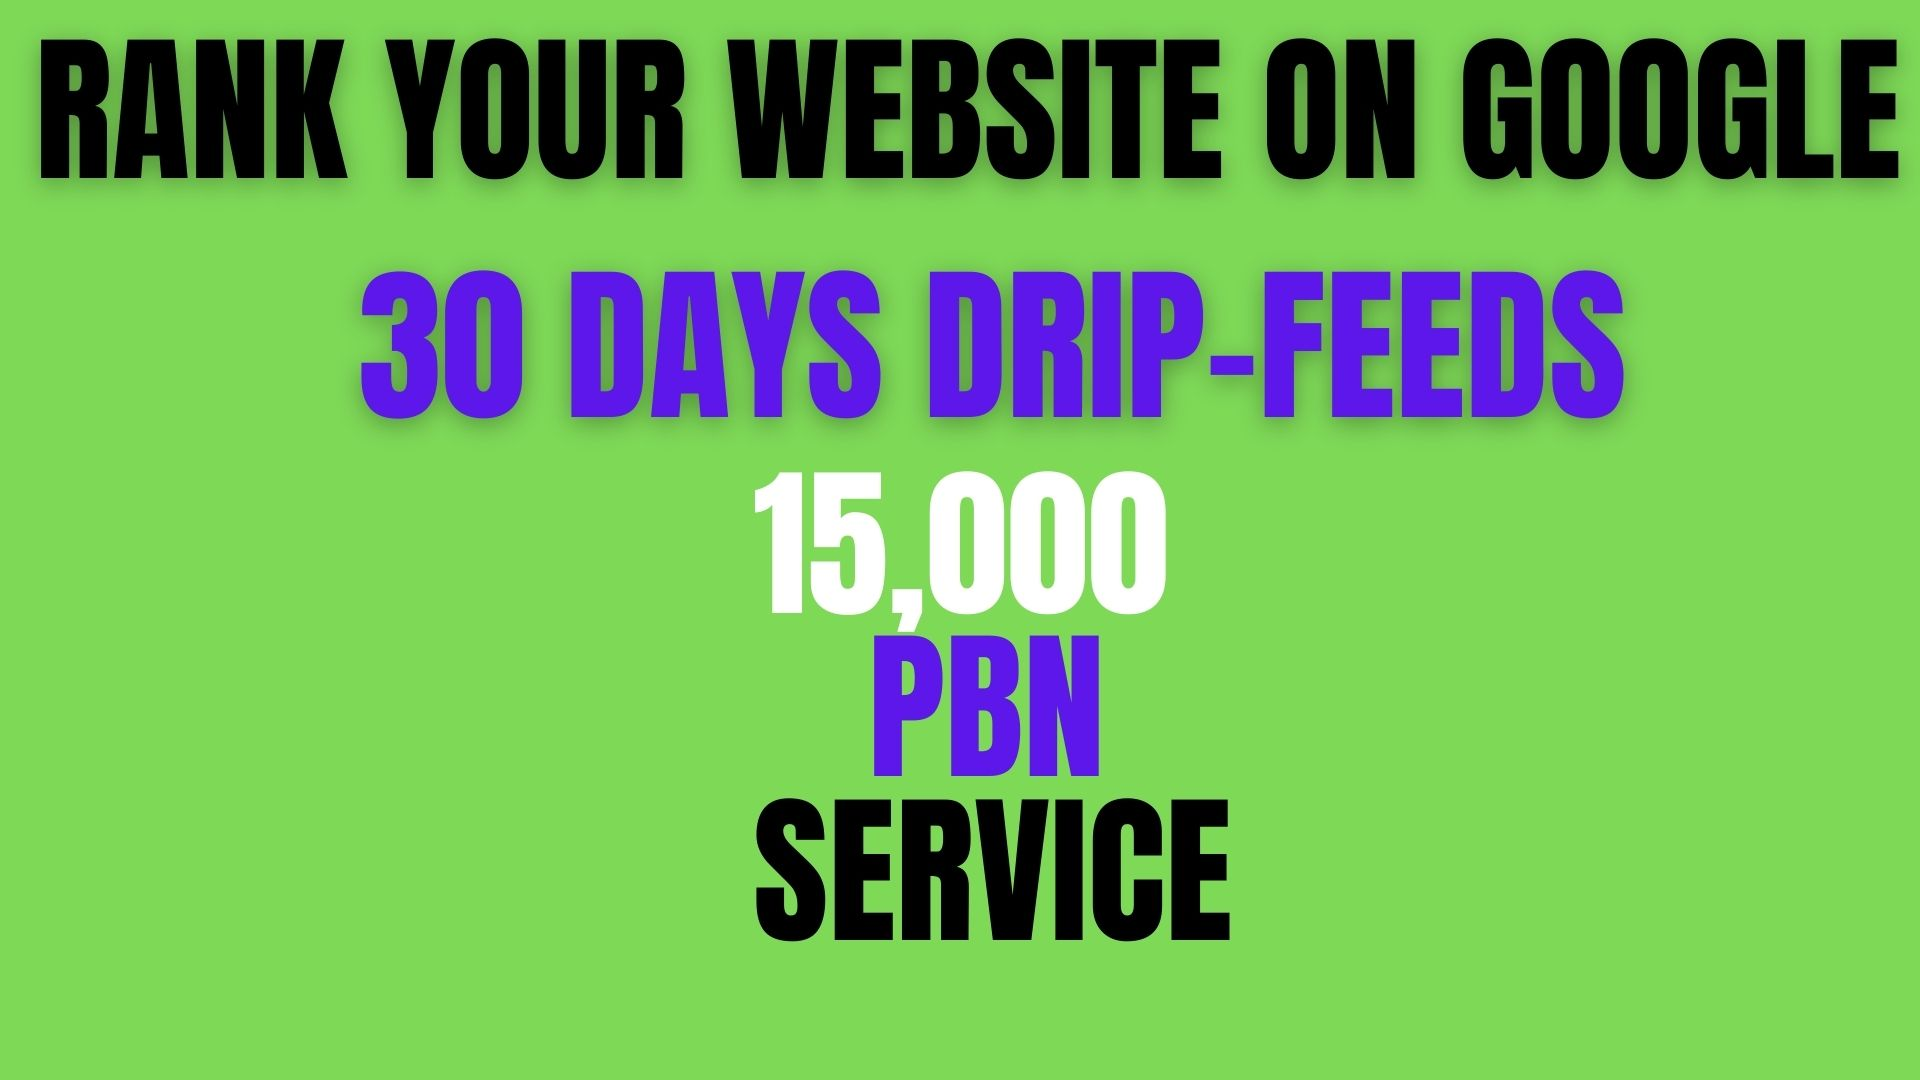 RANK your website on google 15,000+Permanent PBN homepage links 30 days drip-feeds unique site